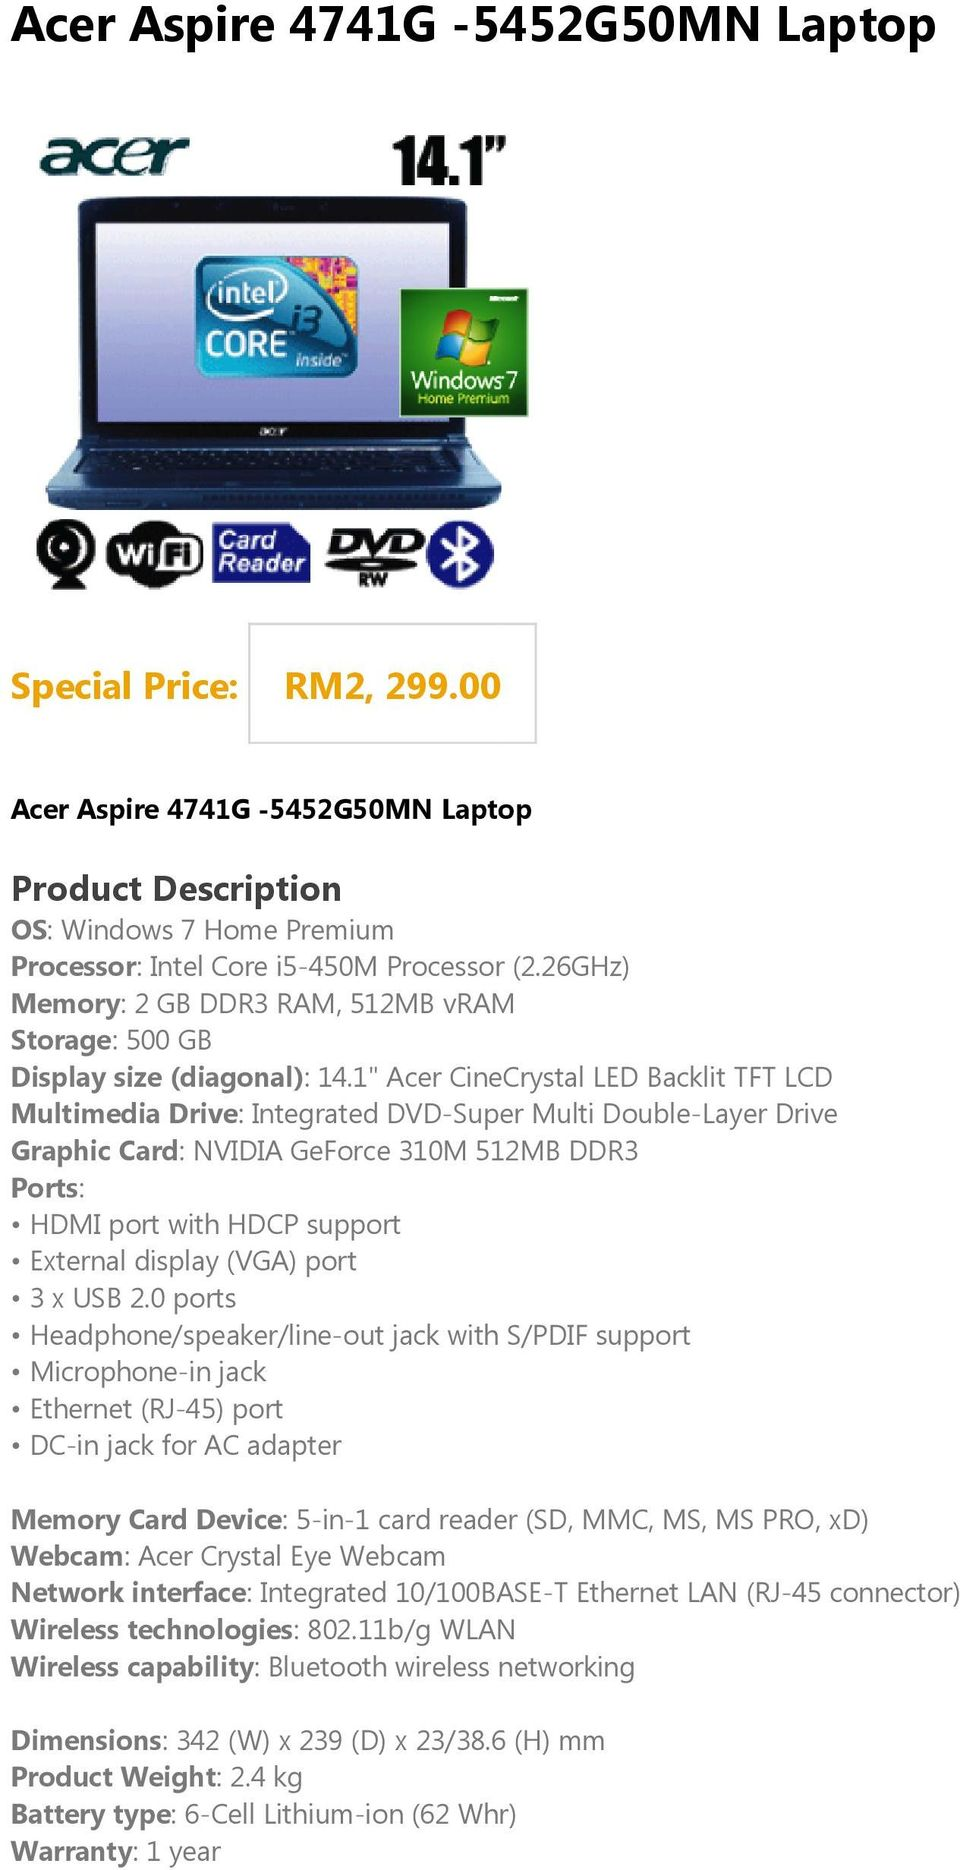 "1"" Acer CineCrystal LED Backlit TFT LCD Multimedia Drive: Integrated DVD-Super Multi Double-Layer Drive Graphic Card: NVIDIA GeForce 310M 512MB DDR3 Ports: HDMI port with HDCP support External"